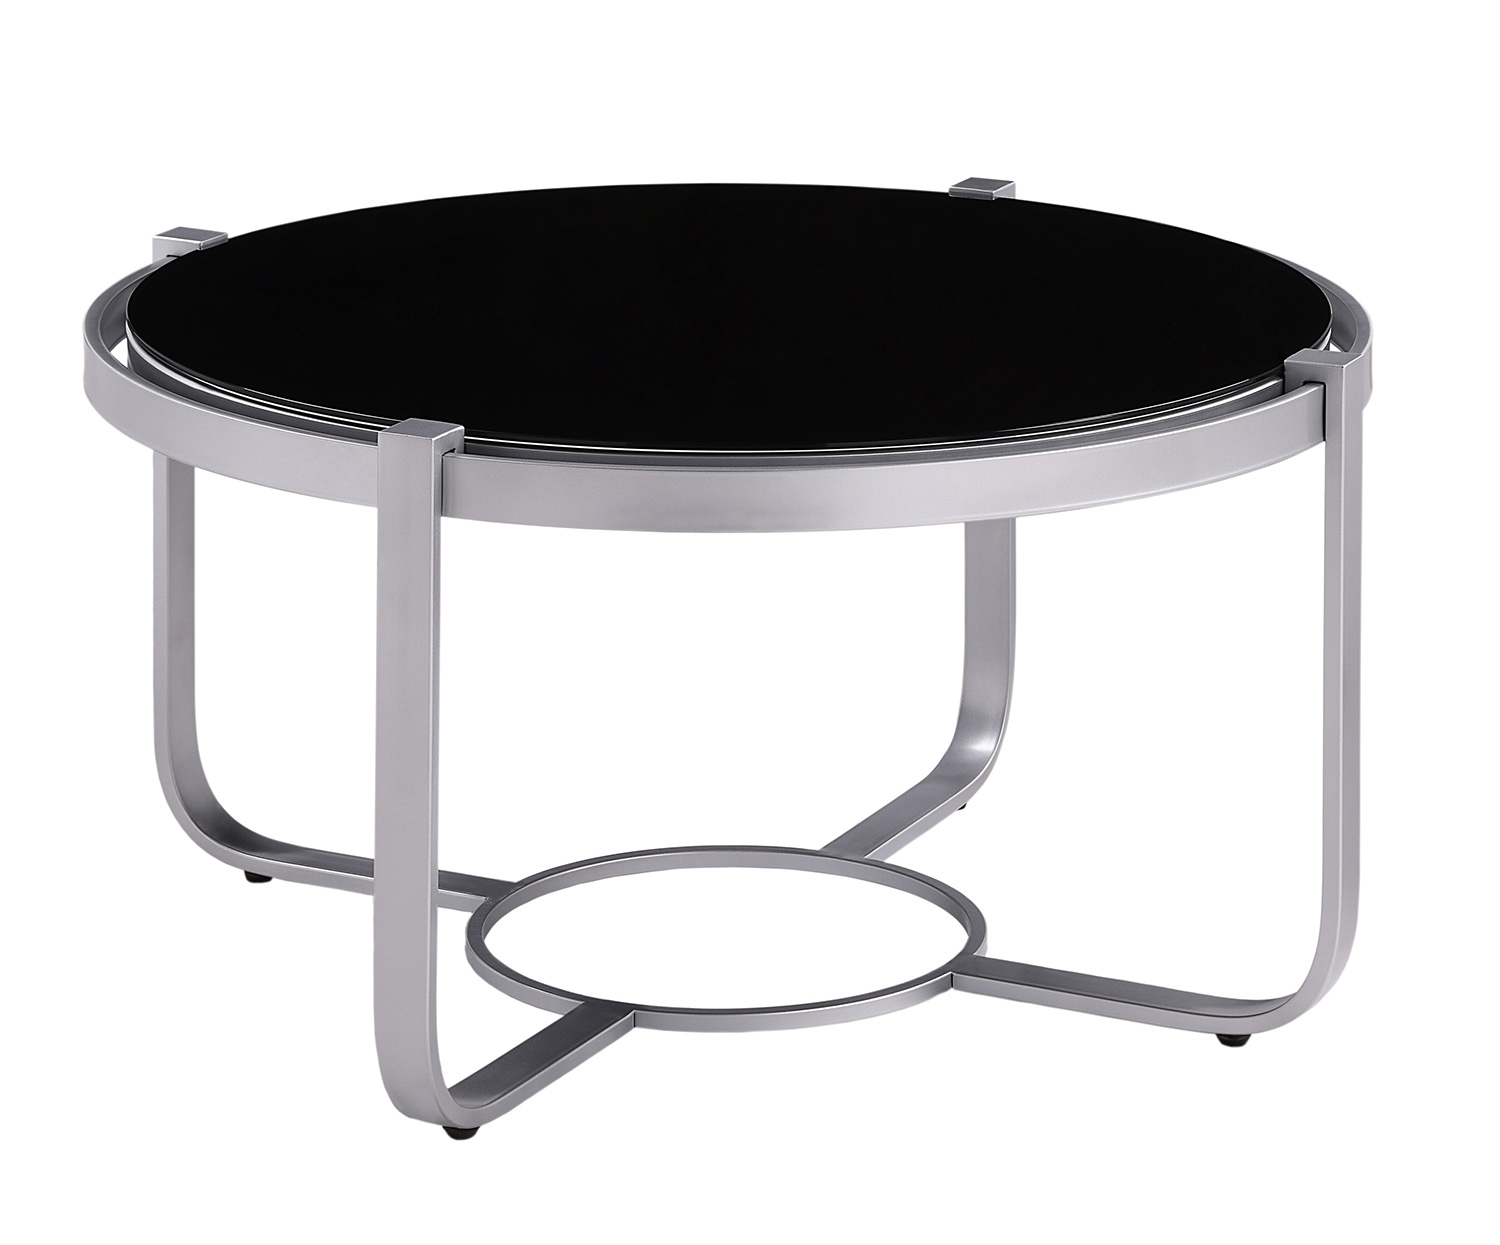 Homelegance Caracal Round Cocktail Table with Black Glass Insert - Silver